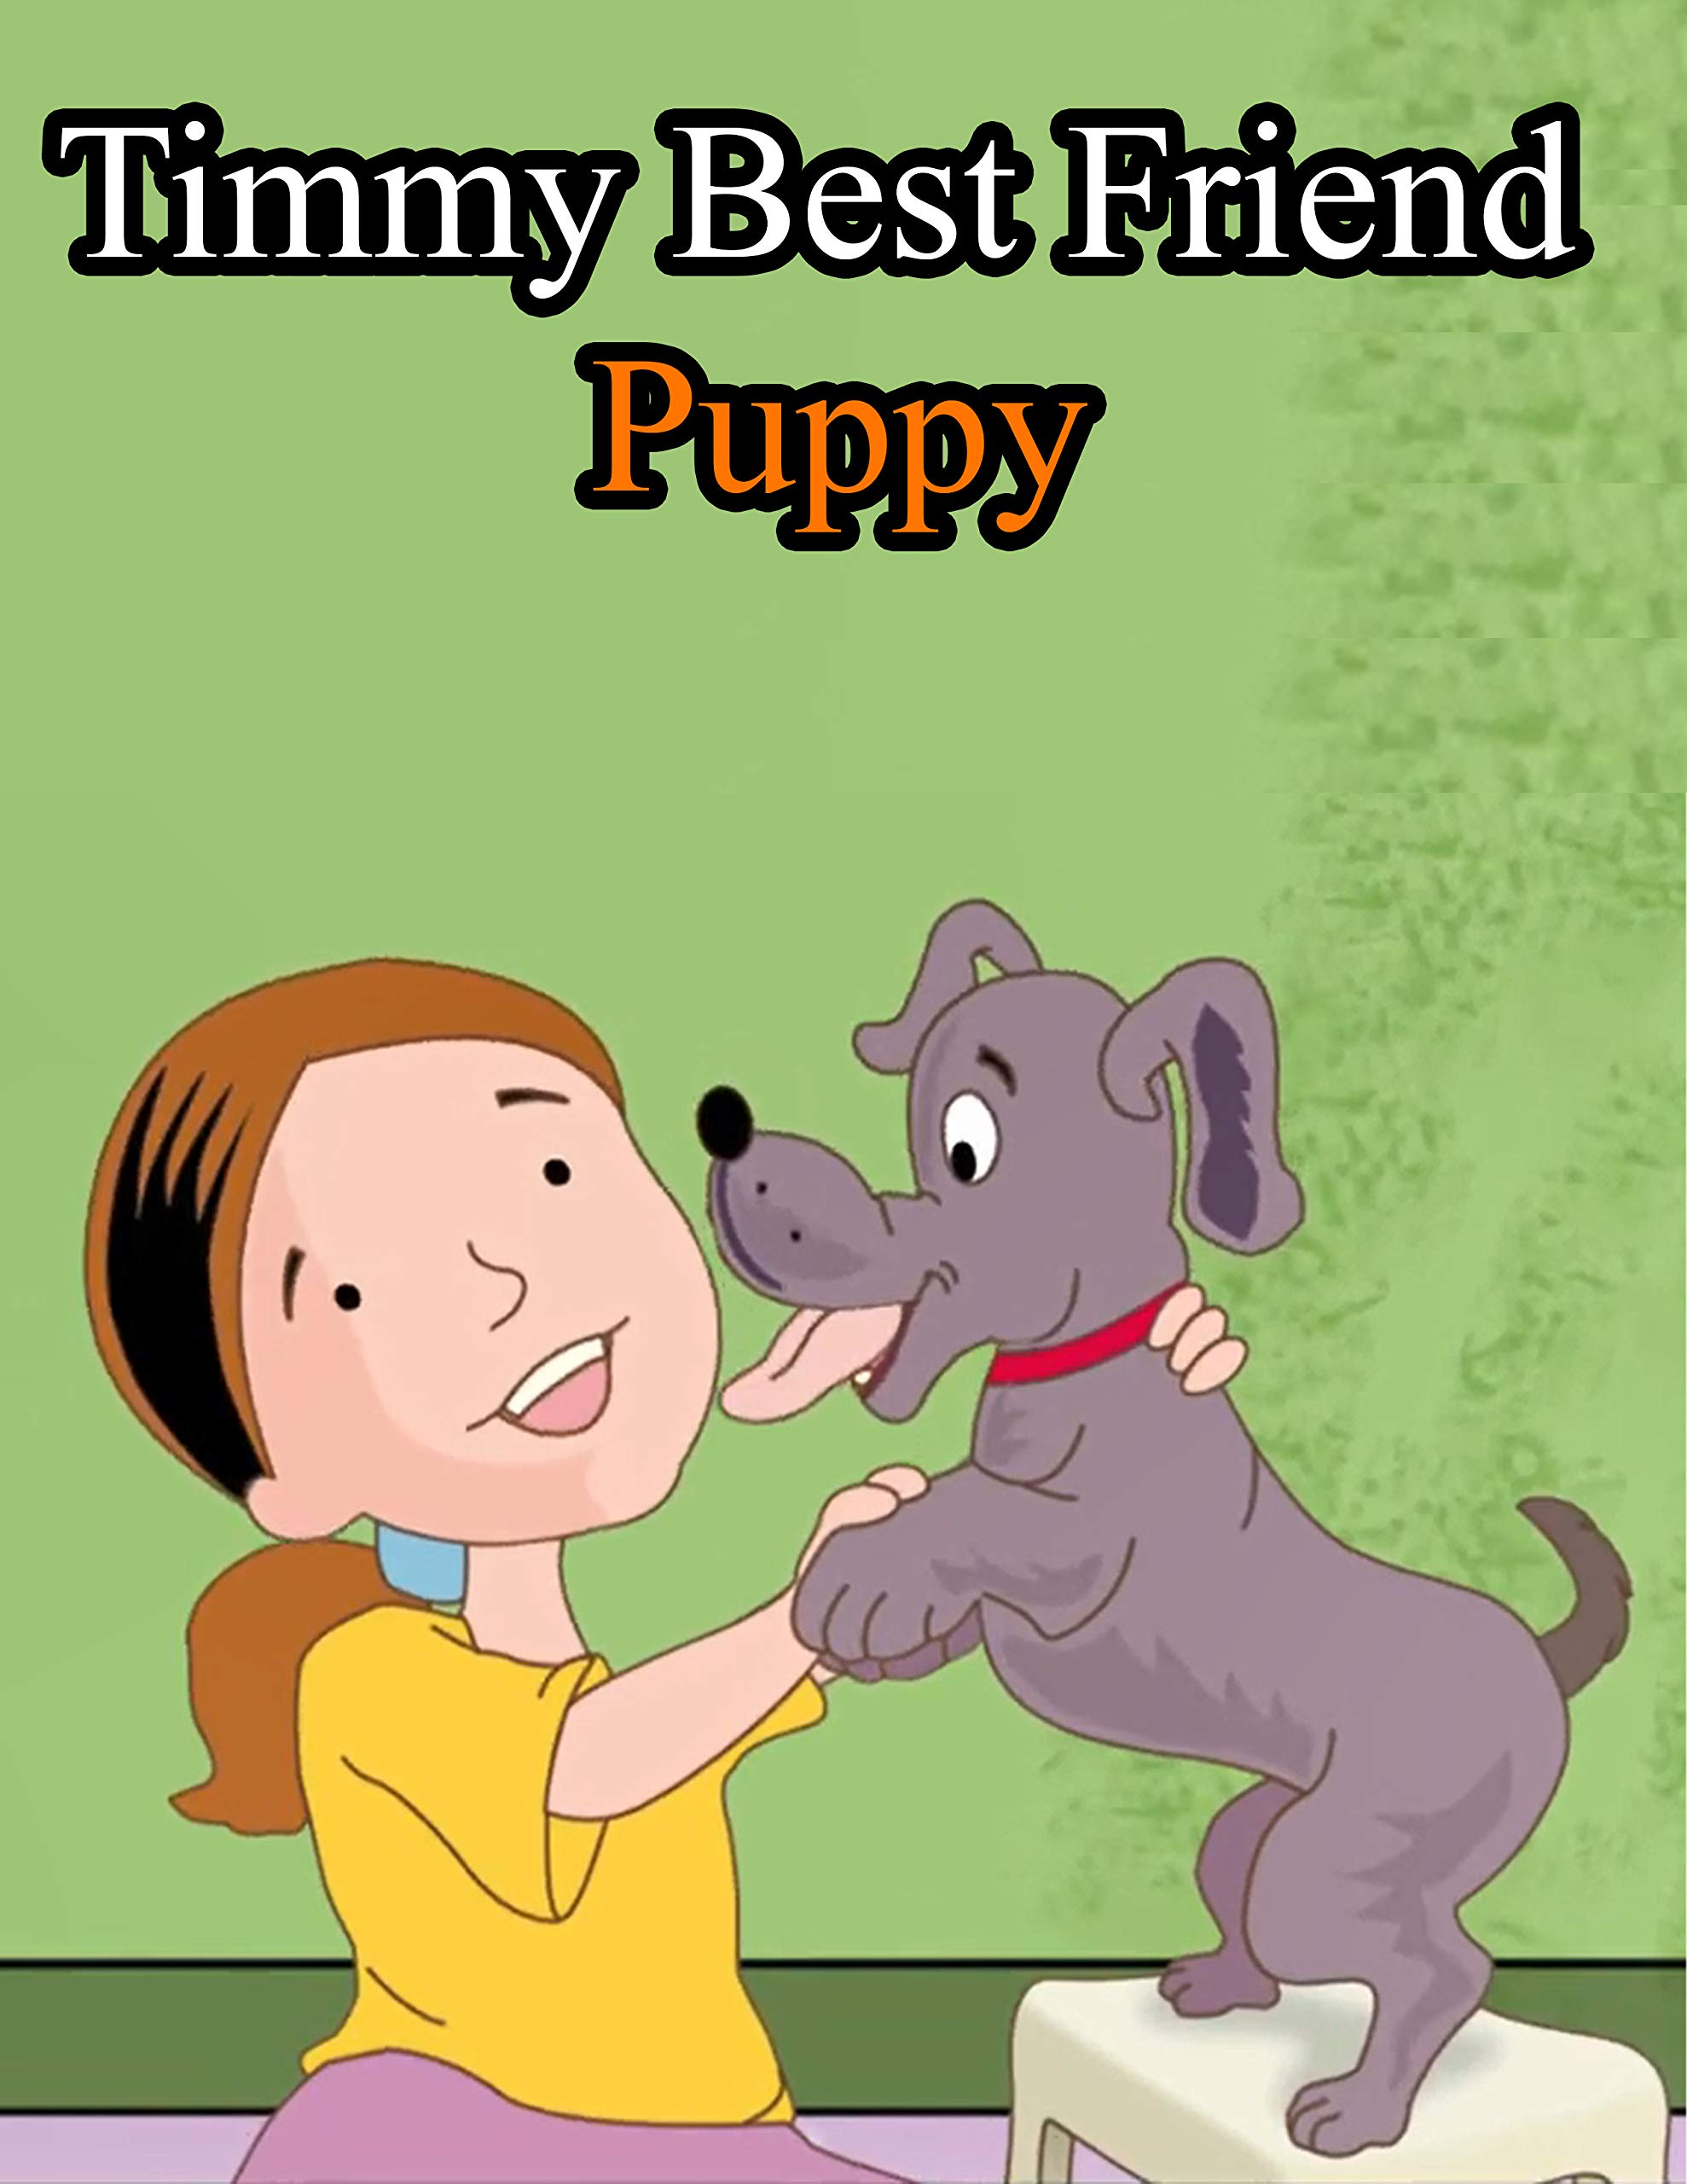 Timmy Best Friend Puppy | Classic Stories For Children In English: English Fairy Tales